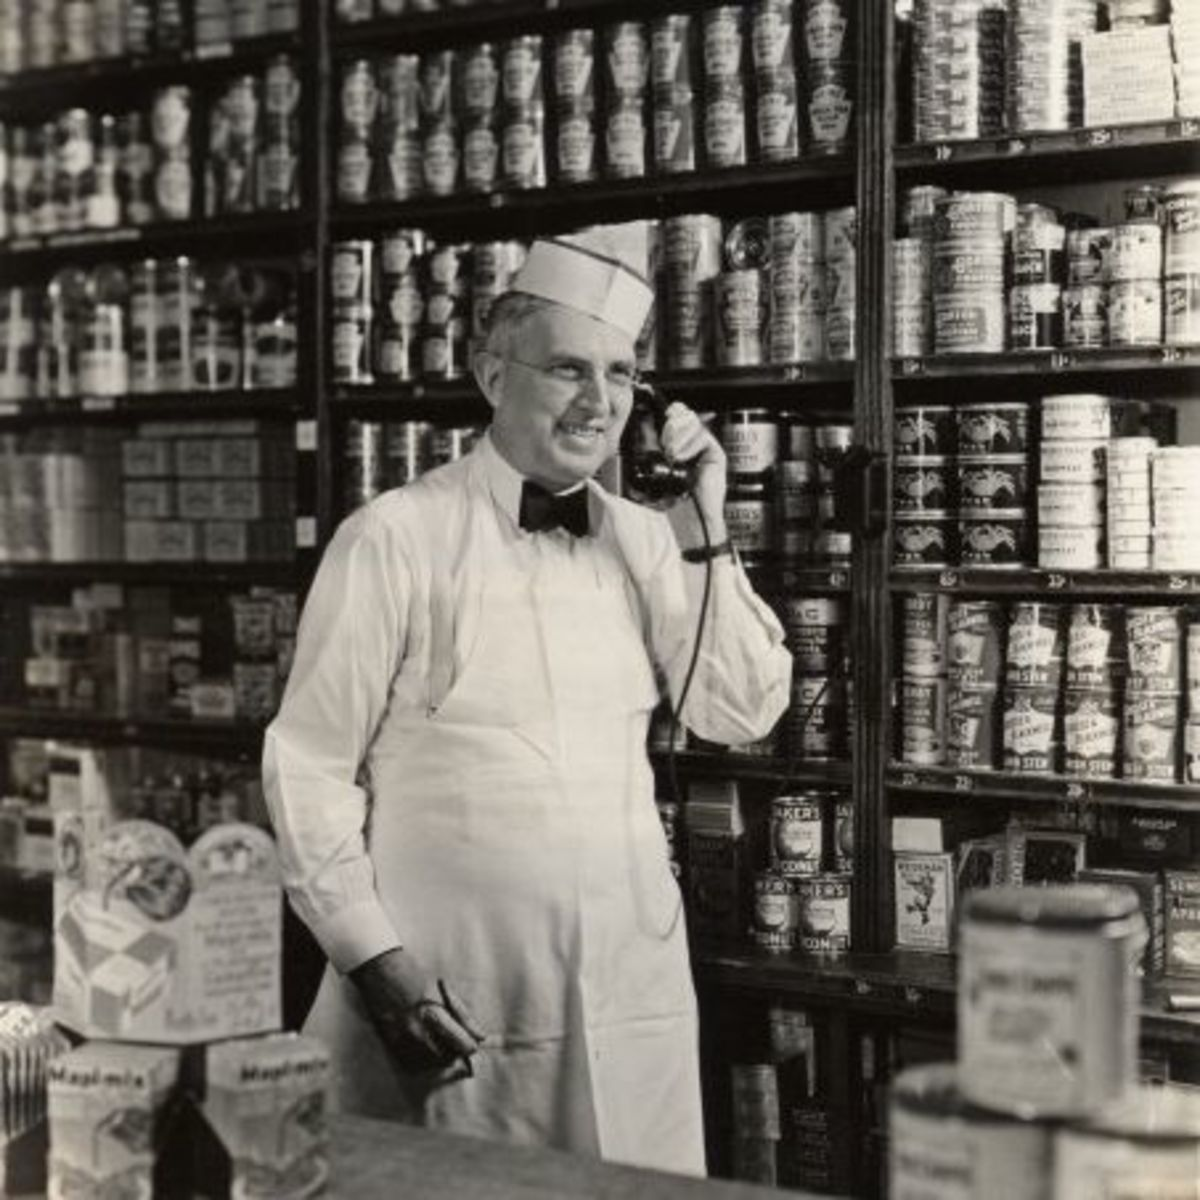 In 1930, milk cost 26 cents a gallon, bread was eight cents a loaf, and eggs were 15 cents a dozen. Four pounds of bananas cost 19 cents, sirloin steak was 39 cents a pound, and pork and beans were five cents a can.